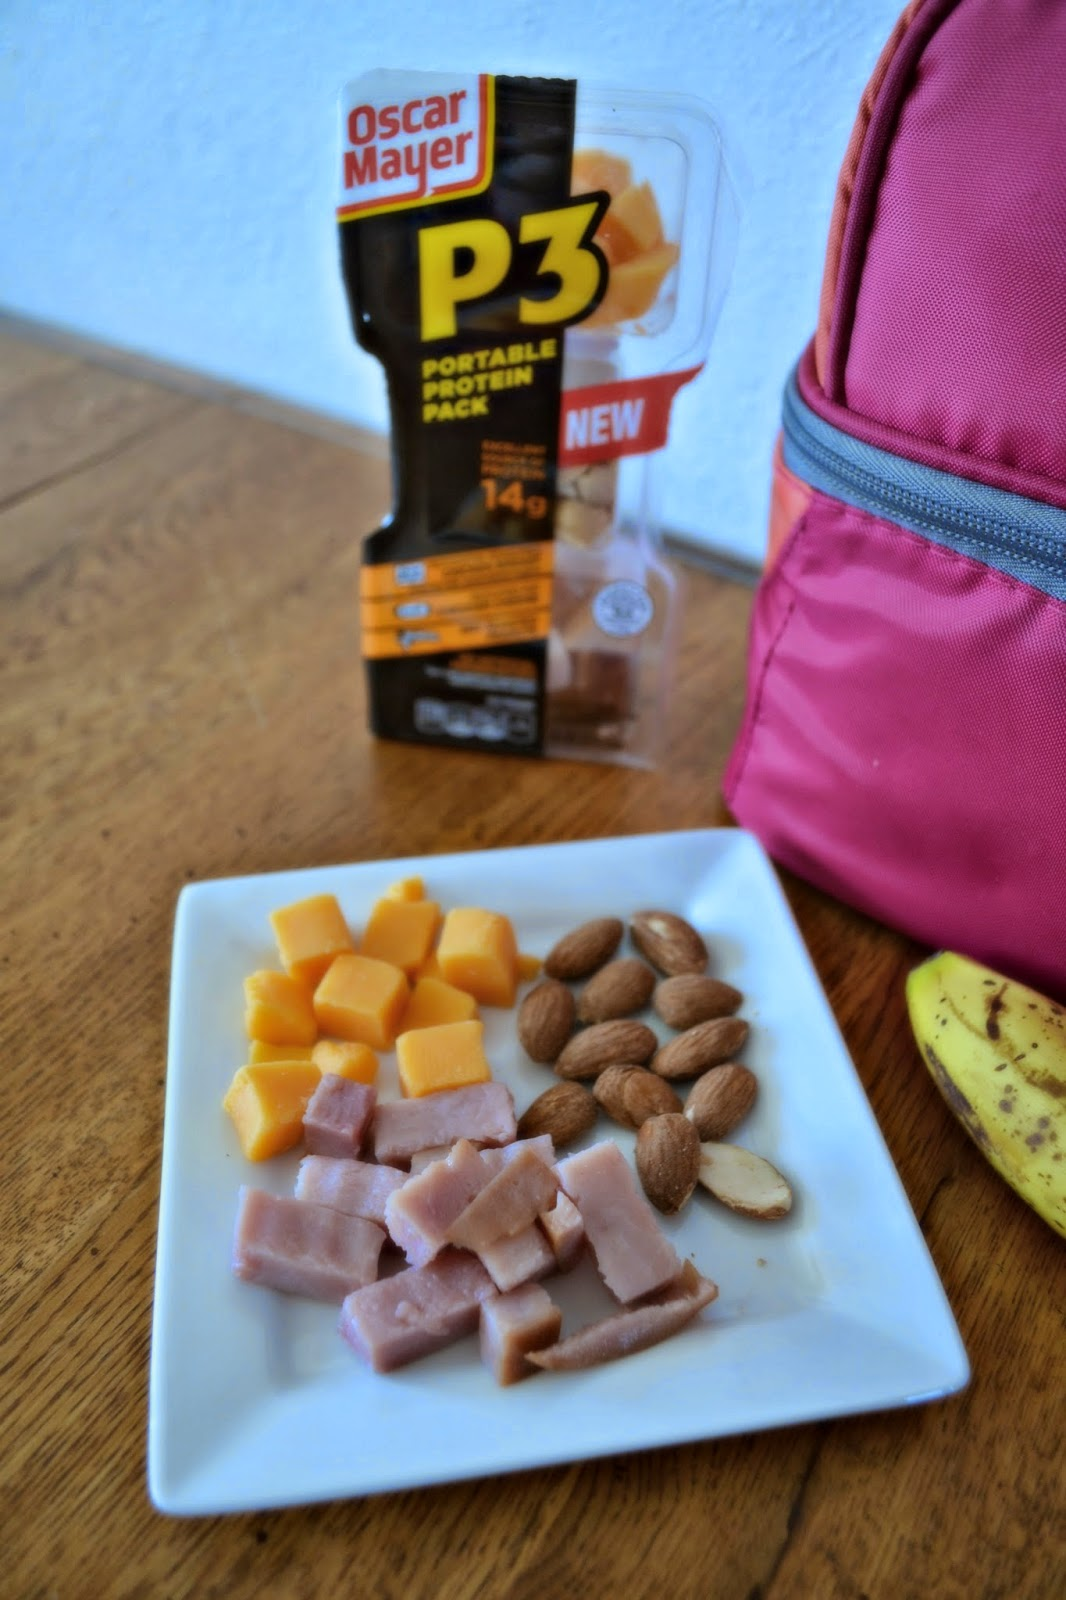 Oscar Mayer P3 portable Protein Pack #portableprotein #shop #cbias